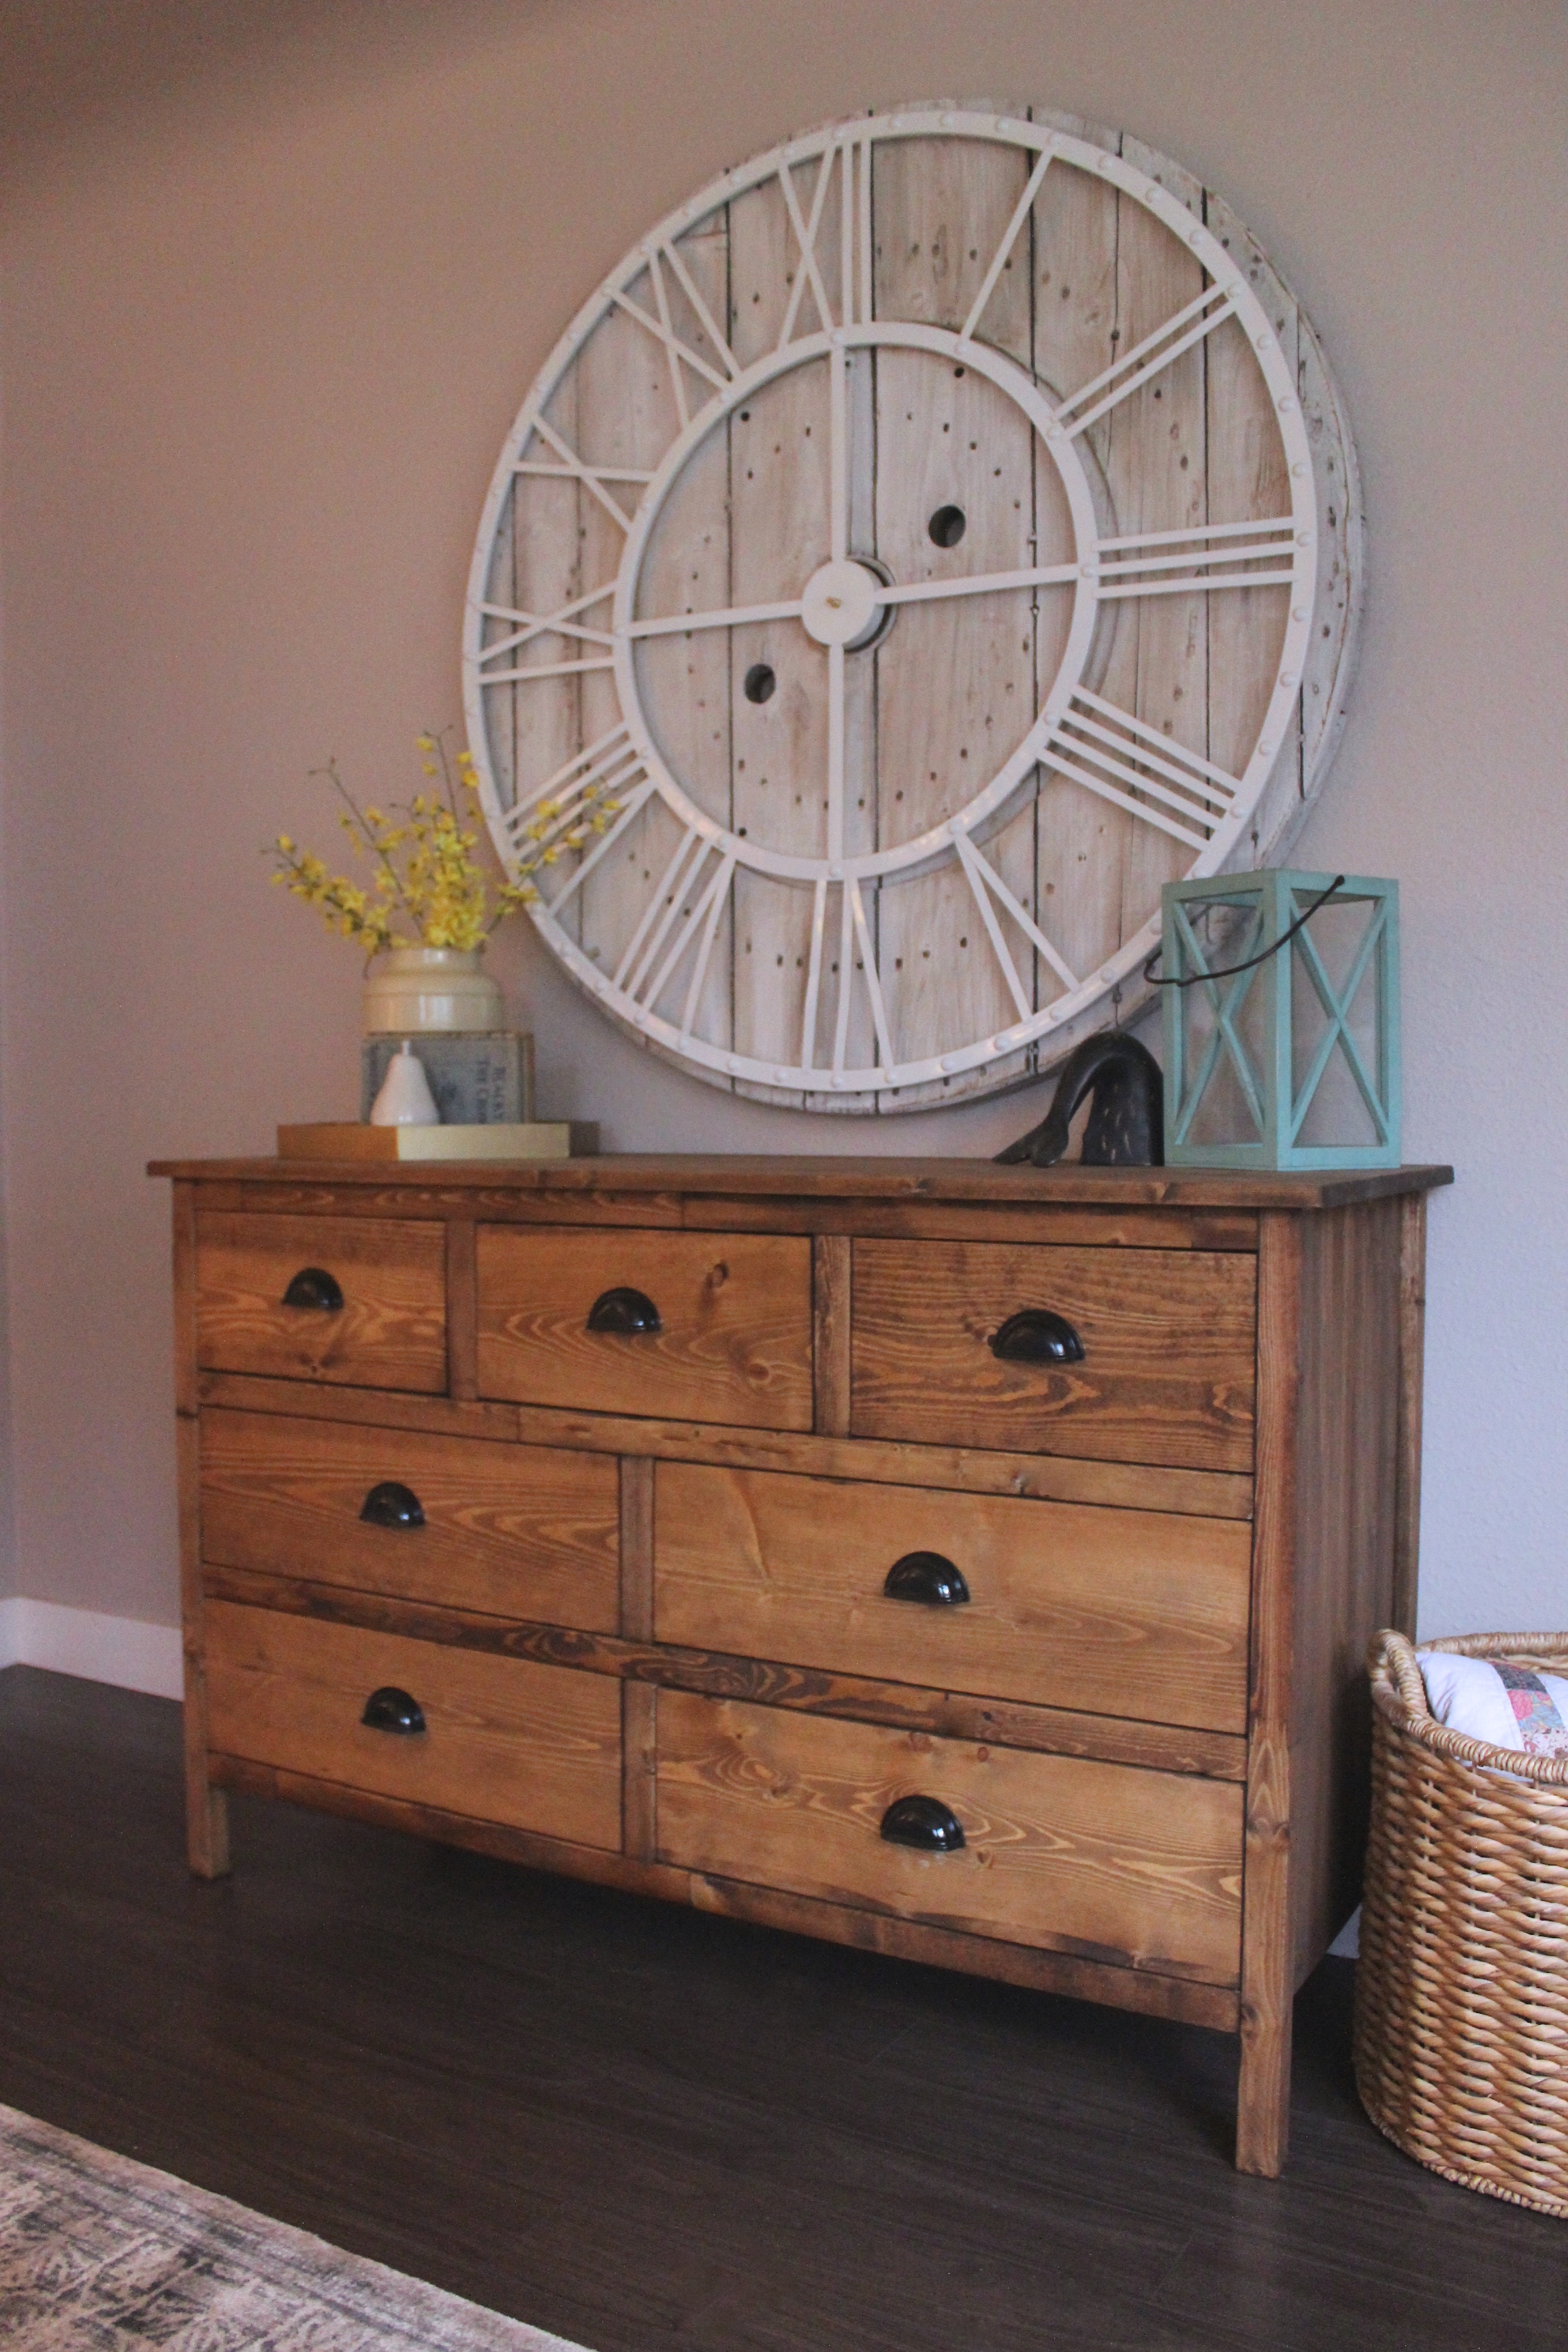 Ana White Rustic 7 Drawer Dresser Diy Projects